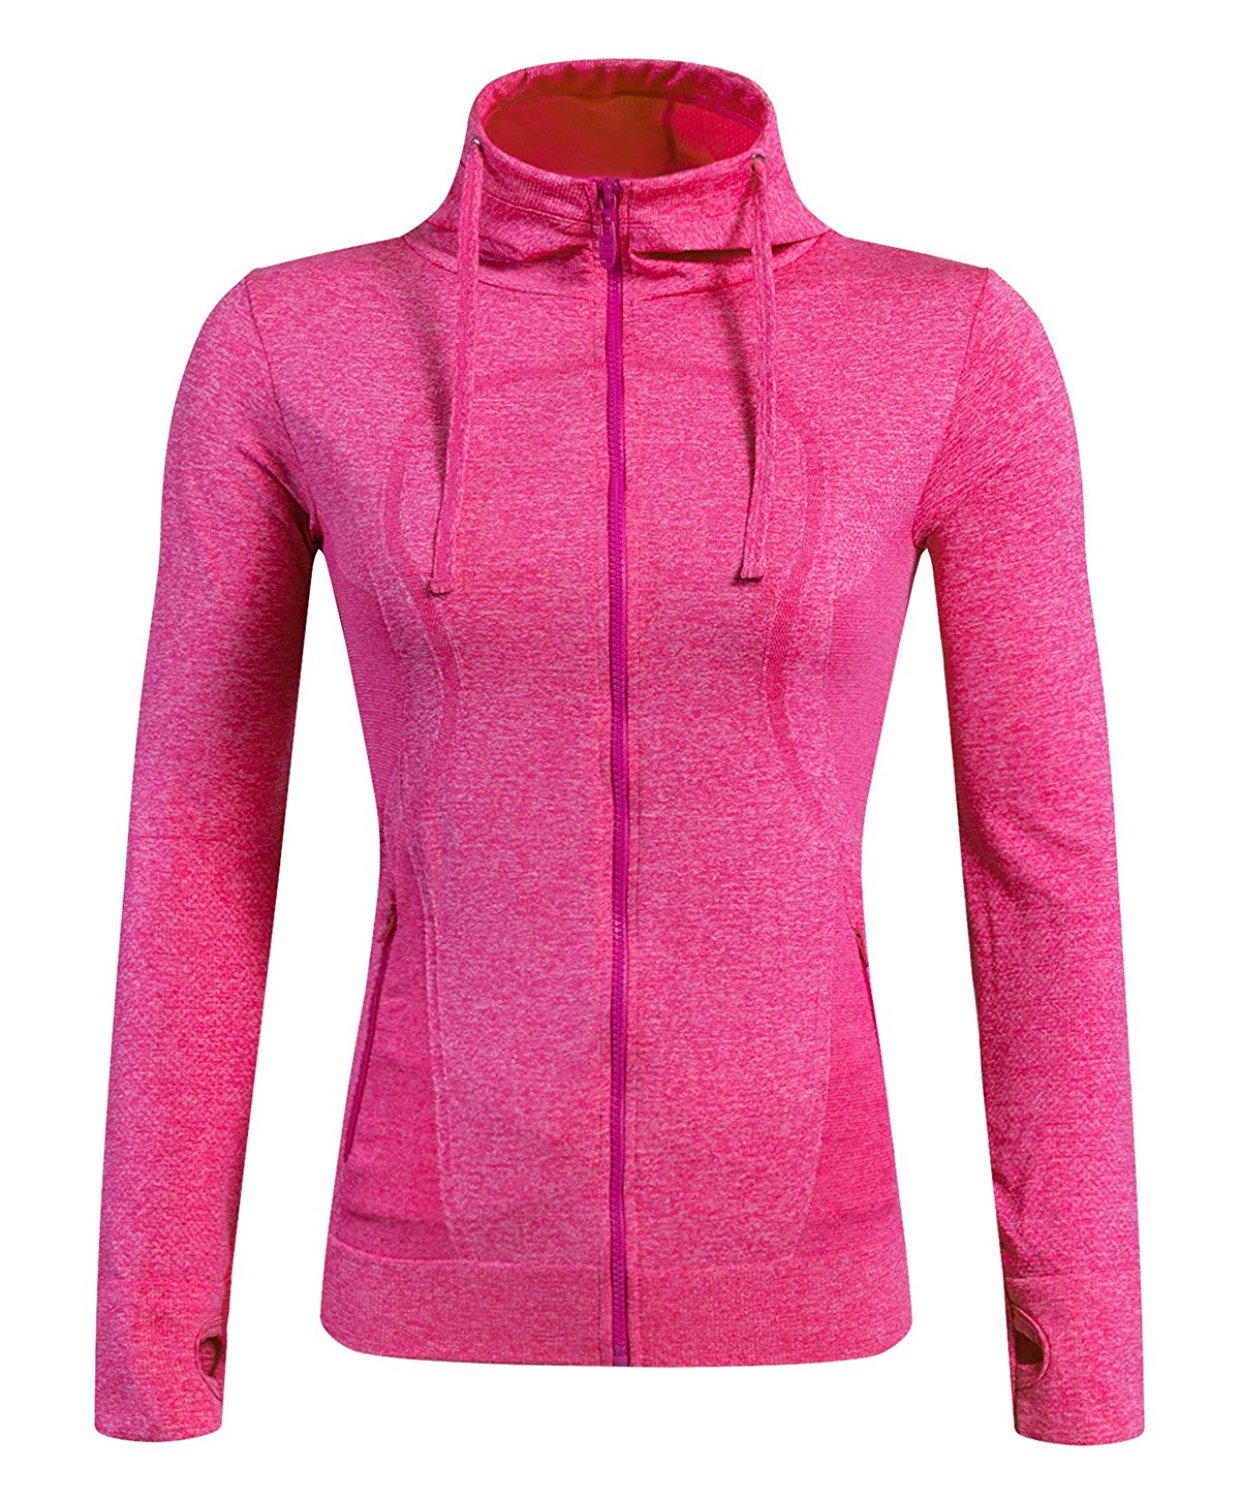 4f22e0828f6 Get Quotations · Selighting Women s Running Sweatshirts Full Zip Hoodie  Yoga Jackets with Thumb Holes